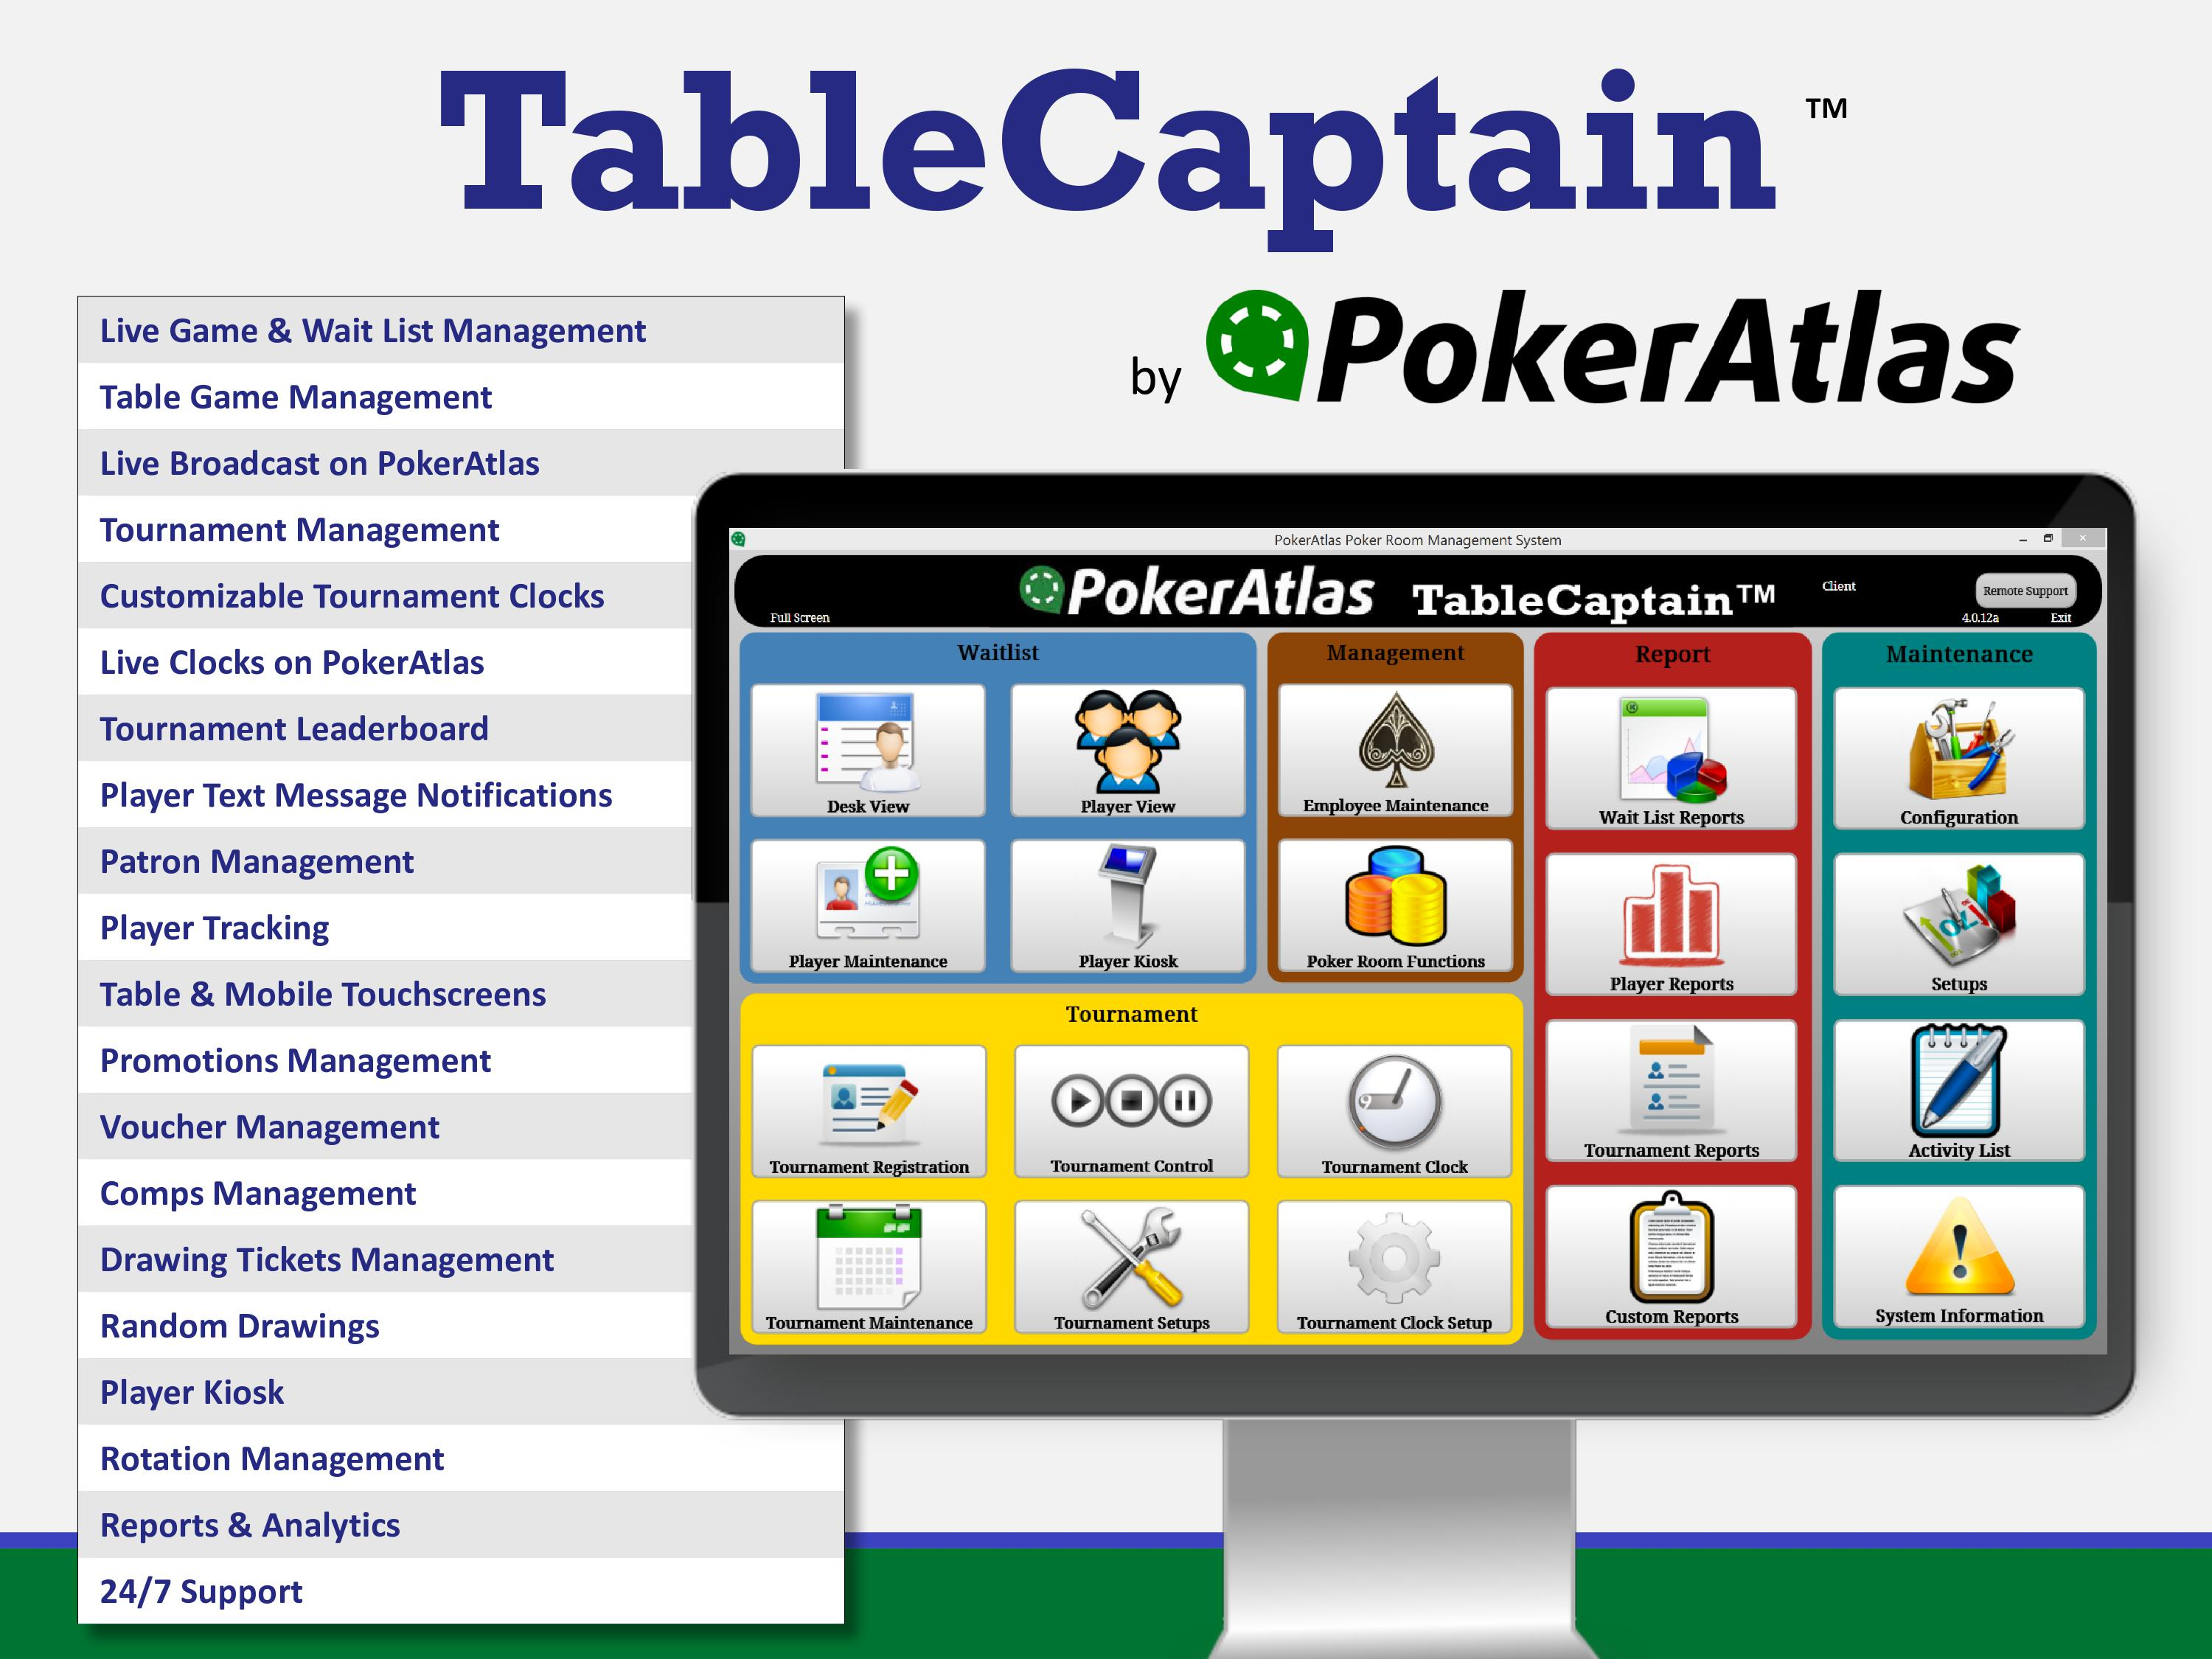 PokerAtlas TableCaptain